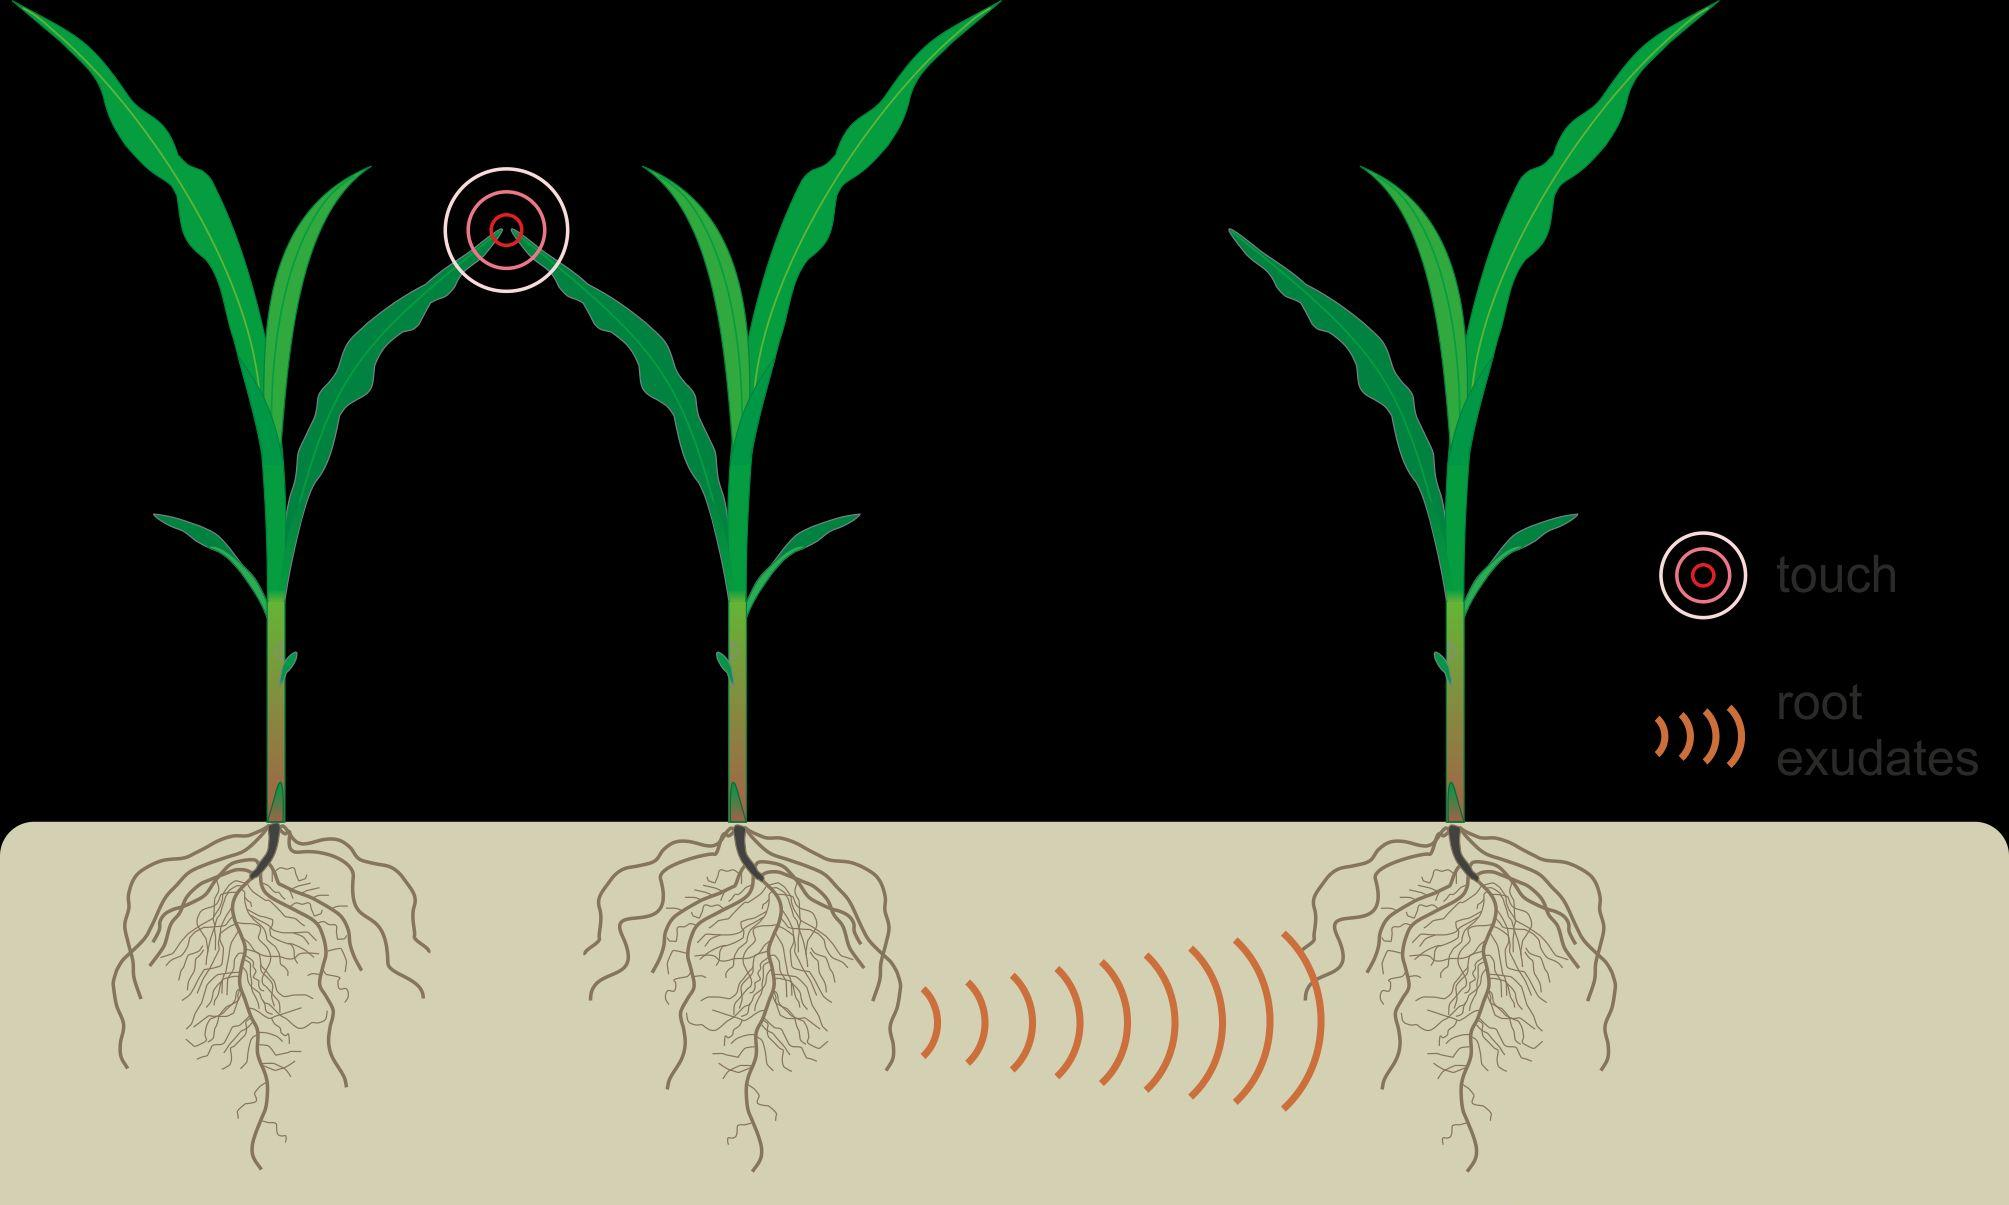 Plants 'talk to' each other through their roots